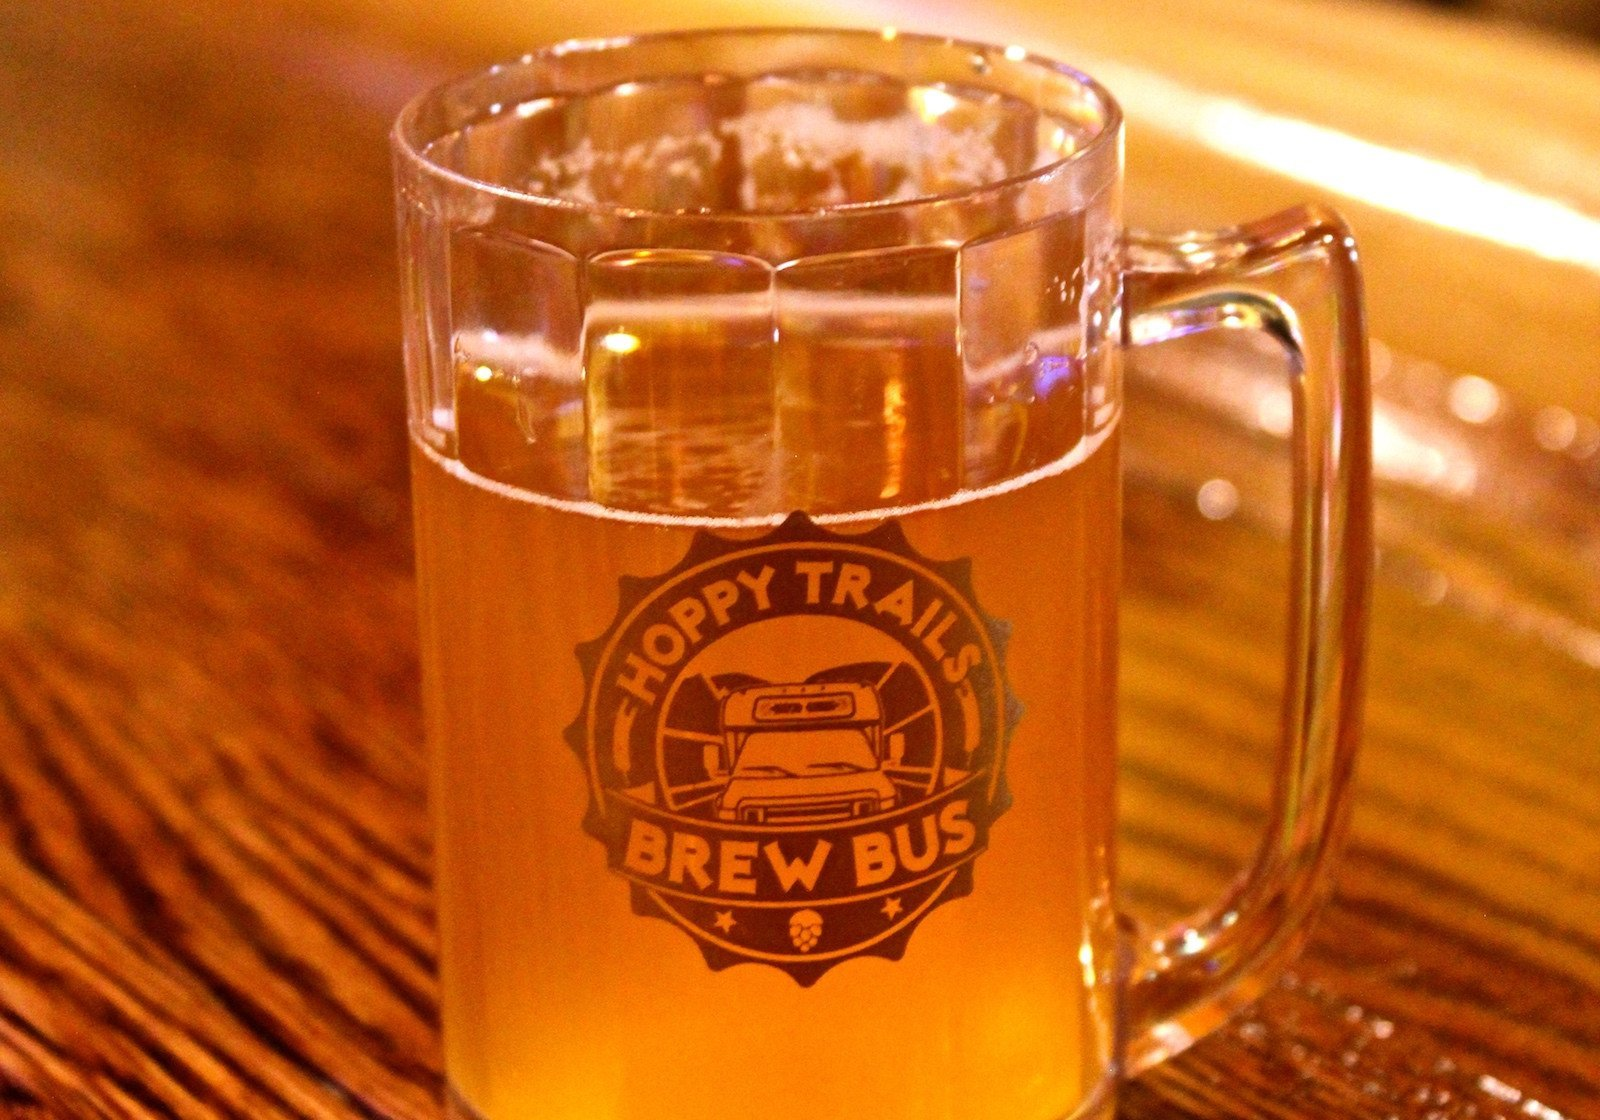 The Adirondack Brew Bus Experience